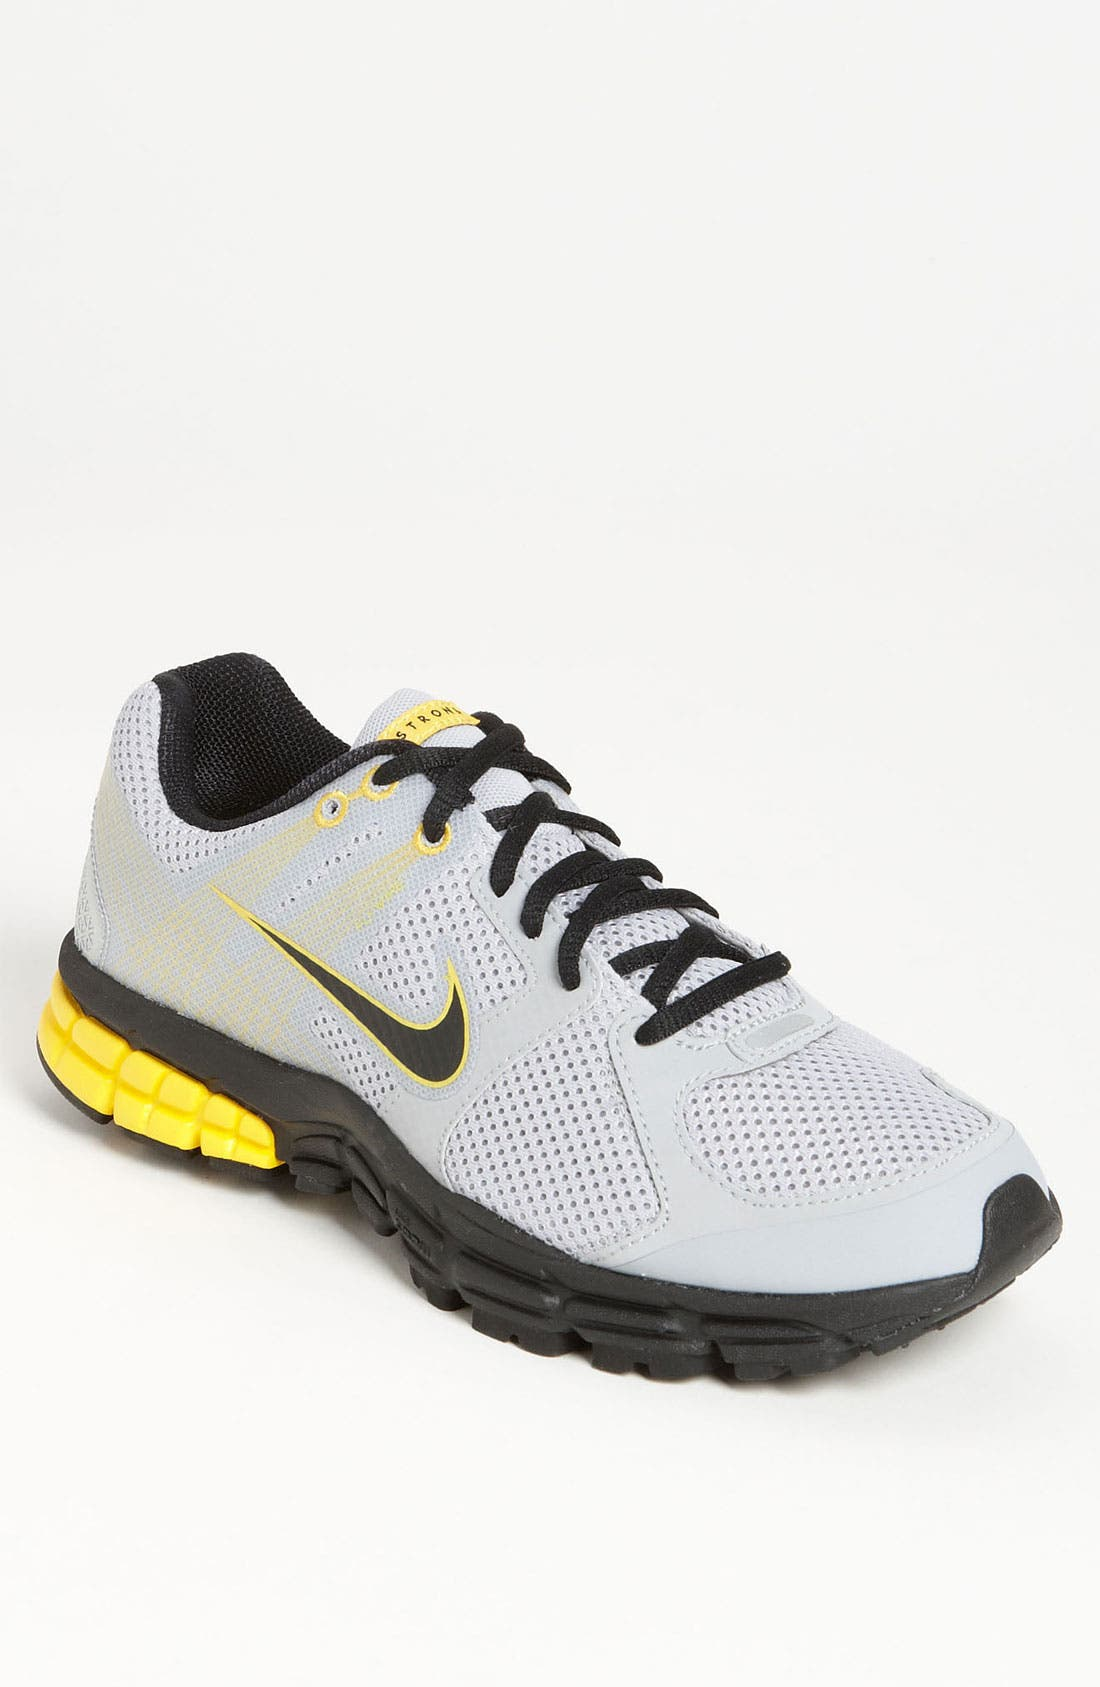 Alternate Image 1 Selected - Nike 'LIVESTRONG Zoom Structure+ 15' Running Shoe (Men)